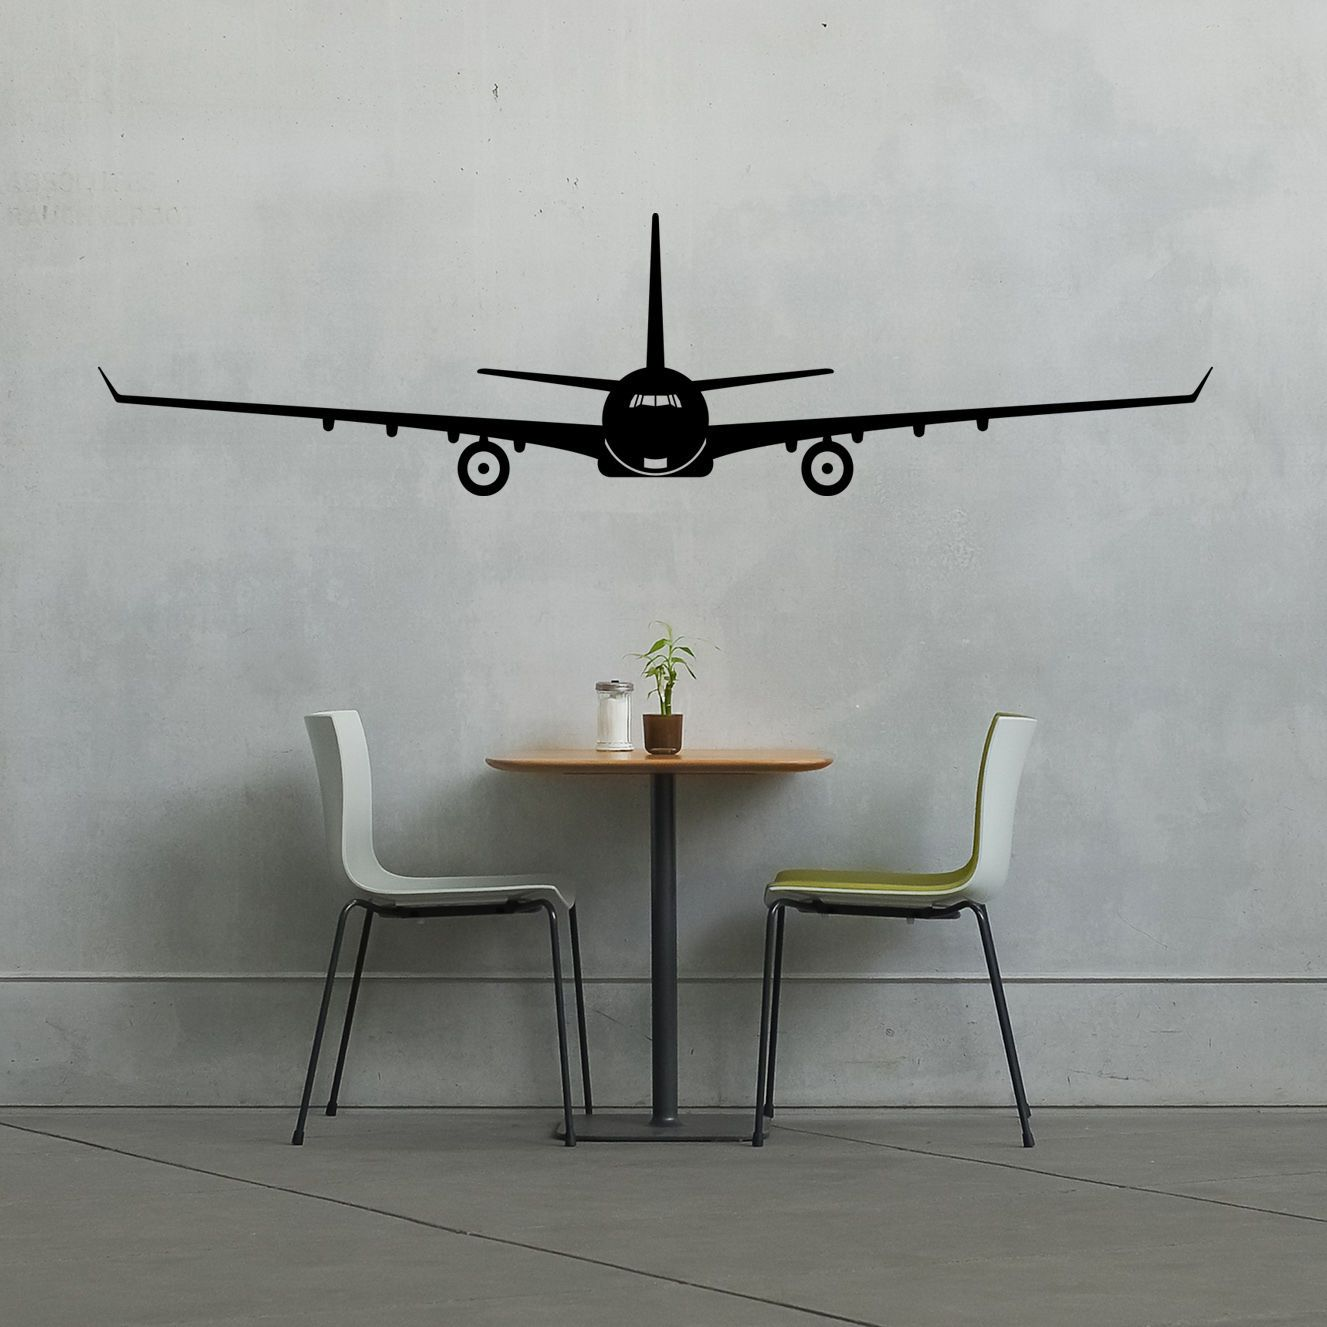 Details about Windowed Airplane Wall Vinyl Decal Sticker